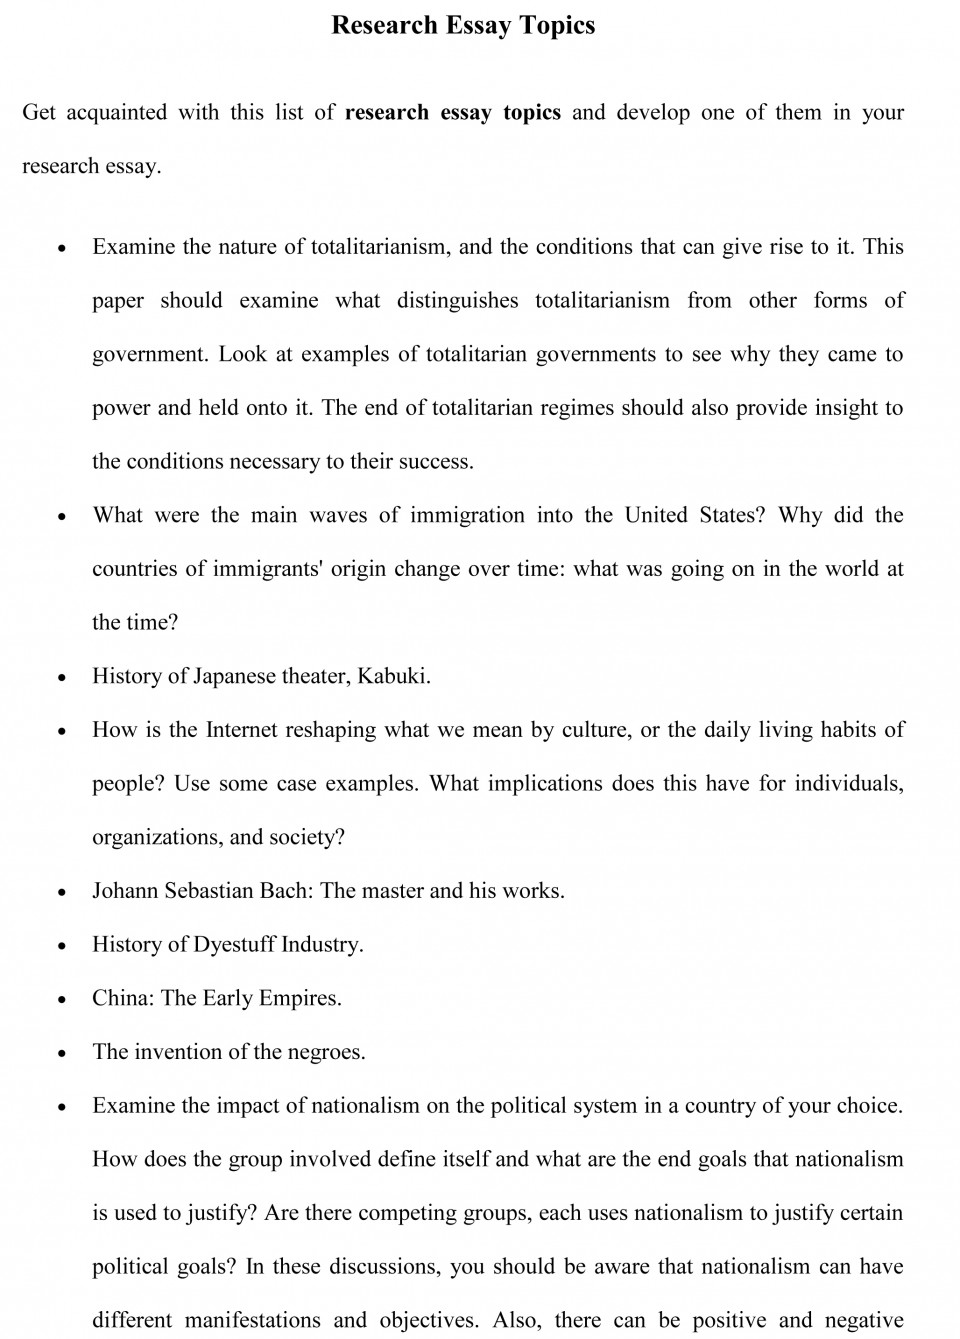 006 Research Essay Topics Sample Good Shocking Paper Reddit Us History For High School 960